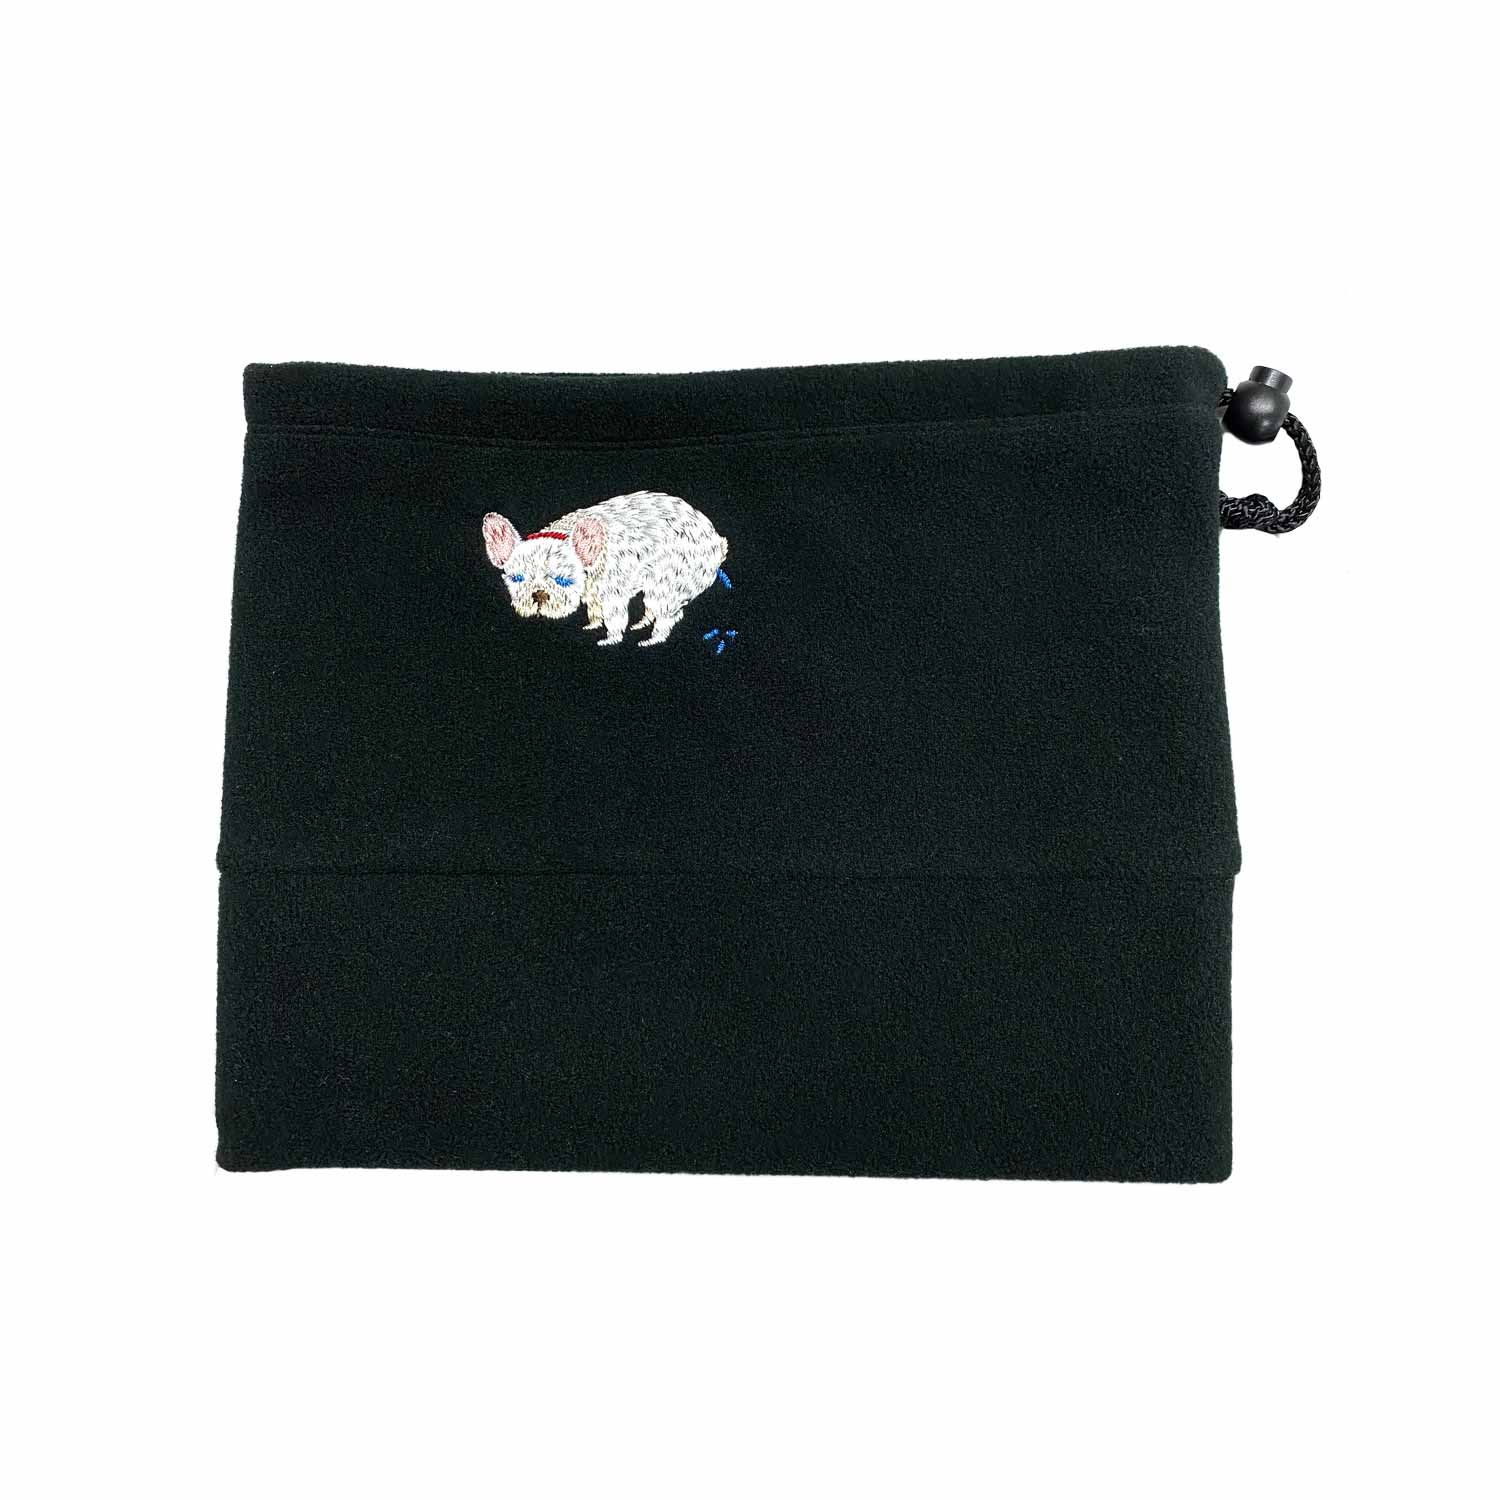 F/B POOPING NECK WARMER - CREAM